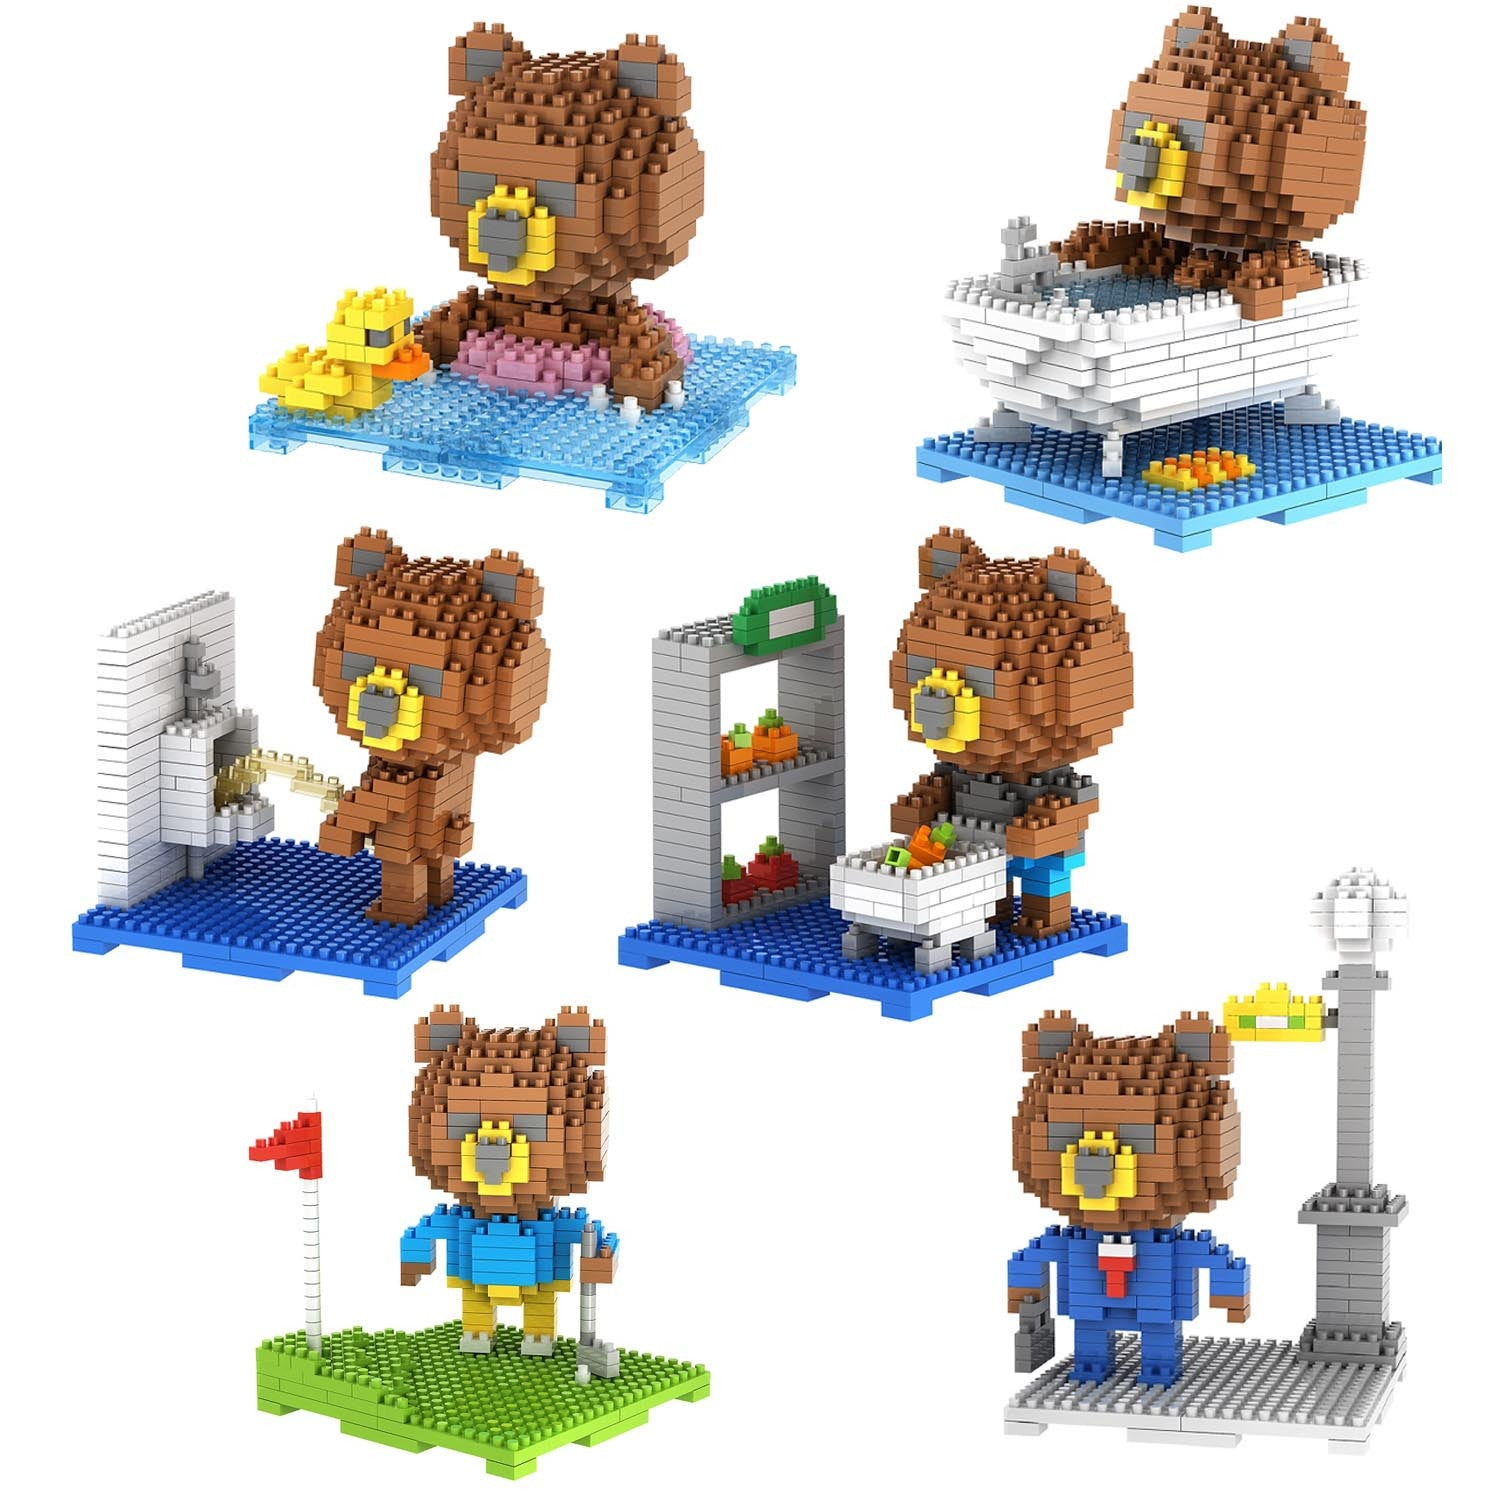 6-in-1 Combo Gift Pack of 2170 Pixel Blocks Toy Kids Bricks Craft (6x Teddy Bears) - RICCO® Toys